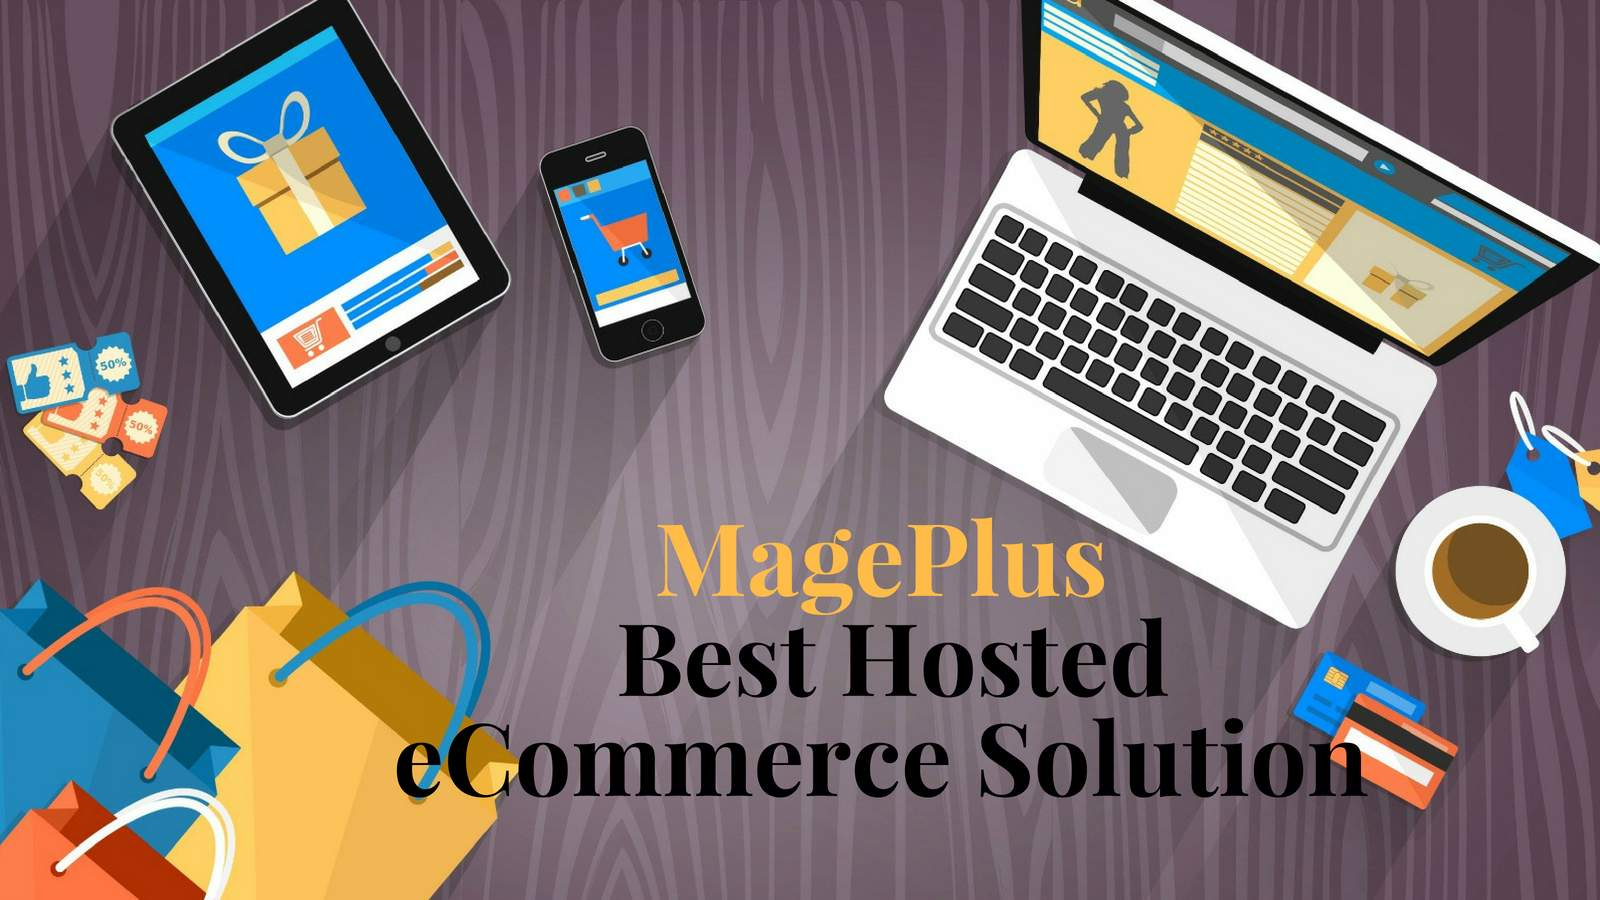 MagePlus - Best Hosted eCommerce Solution-min